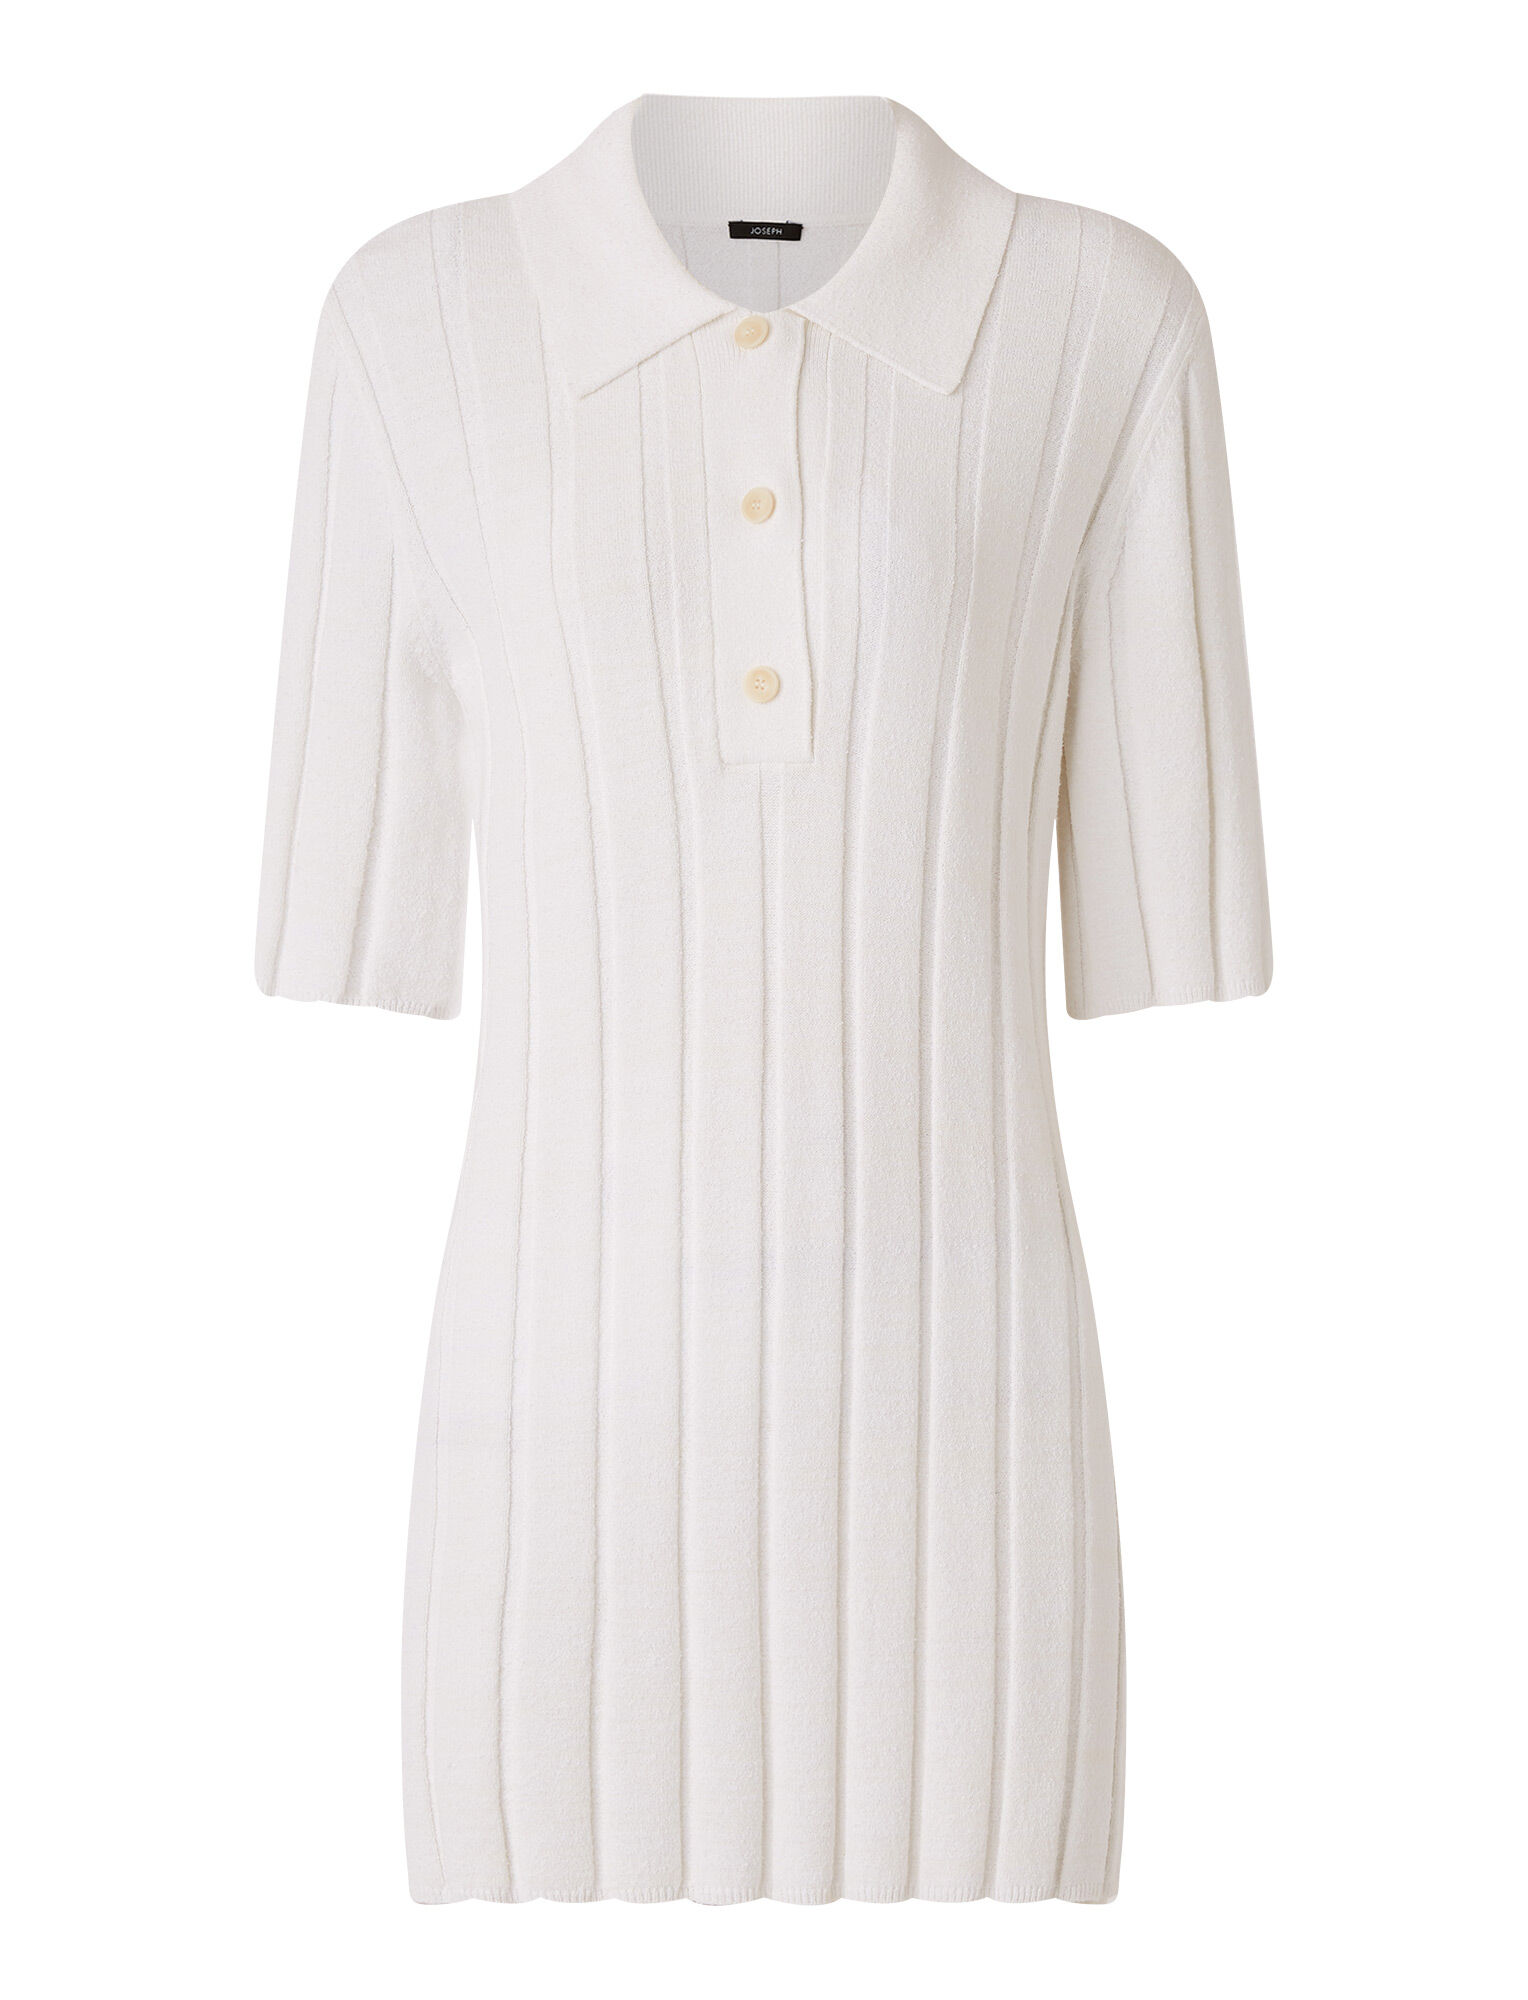 Joseph, Textured Rib Polo Top, in OFF WHITE